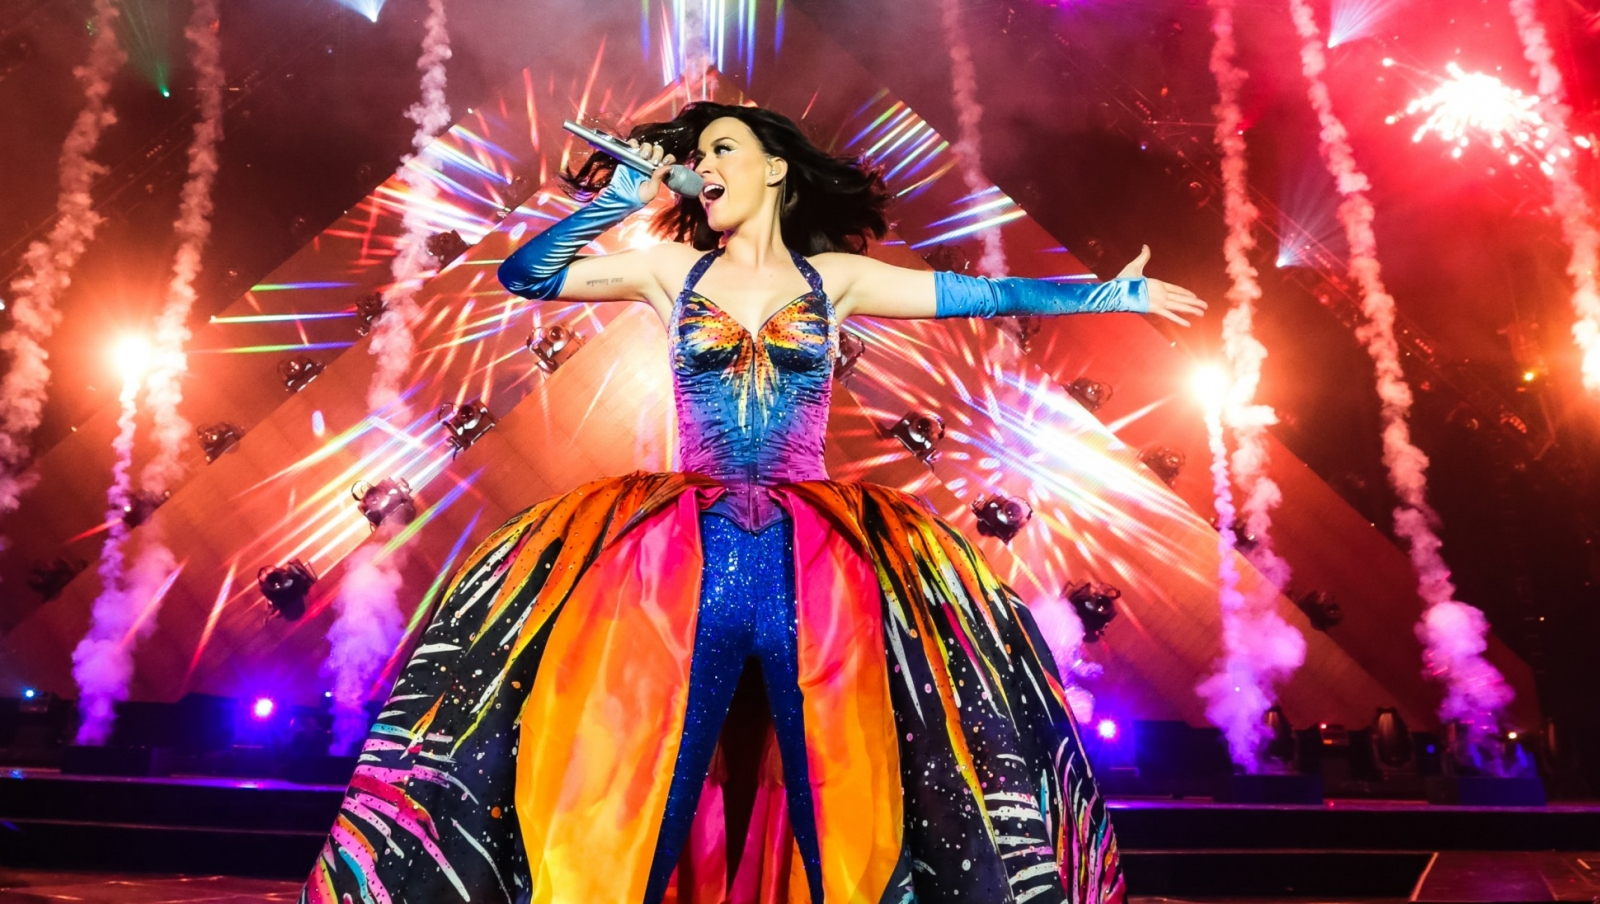 Katy Perry promises lions and sharks during Super Bowl halftime performance